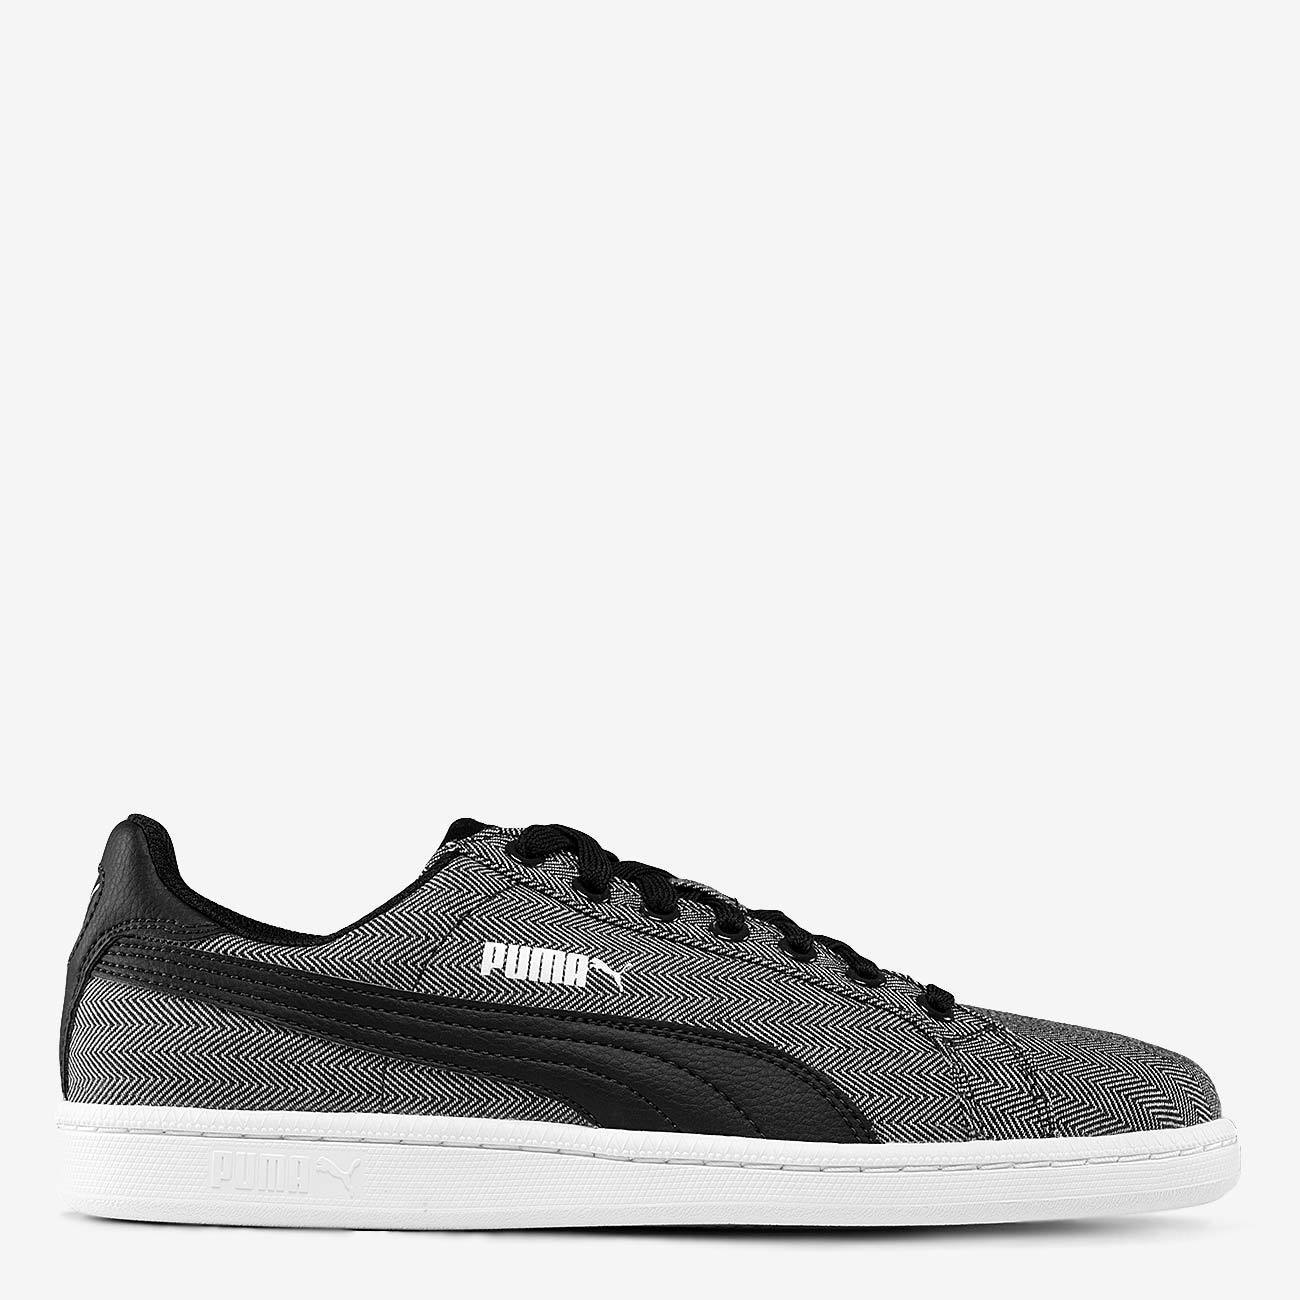 SCARPE SNEAKERS UOMO PUMA ORIGINALE SMASH HERRINGBONE 362366 SHOES P/E NEW